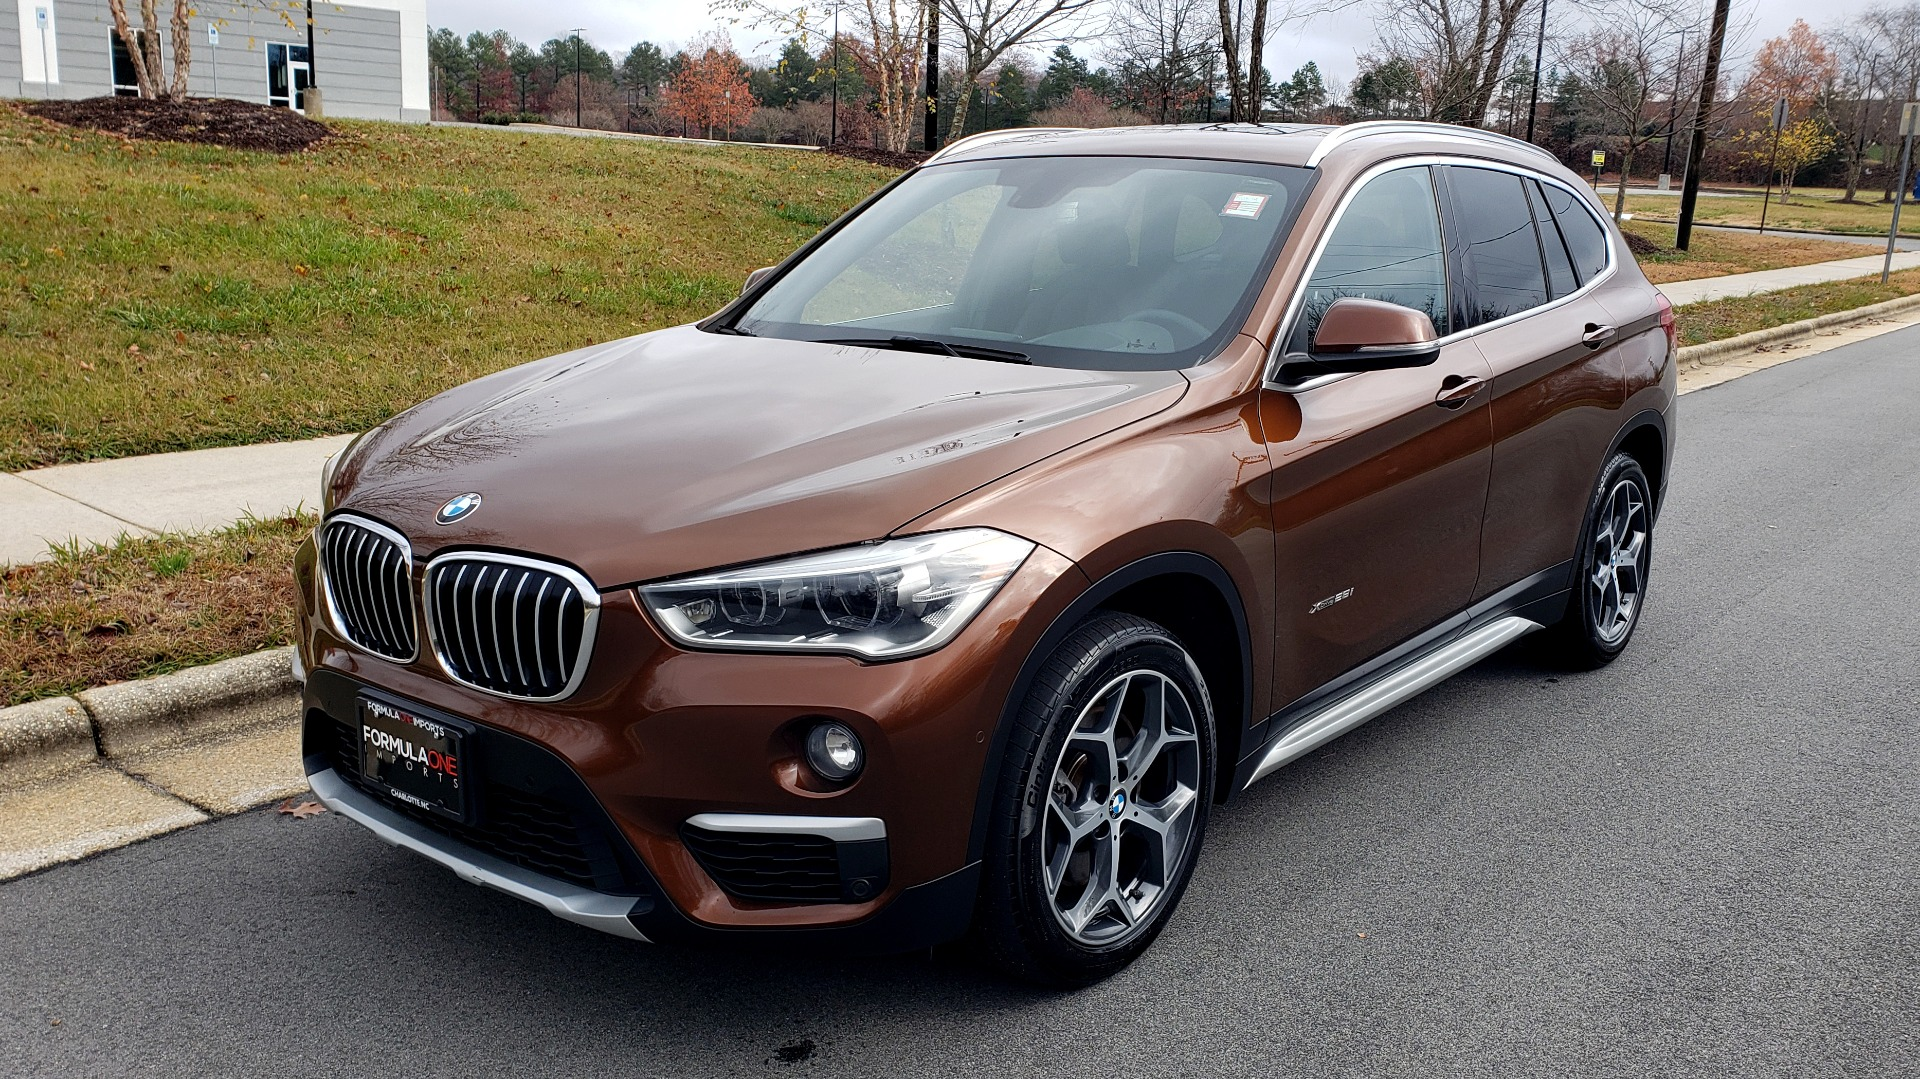 Used 2017 BMW X1 XDRIVE28I / PREM / TECH / DRVR ASST / COLD WTHR / REARVIEW for sale Sold at Formula Imports in Charlotte NC 28227 1